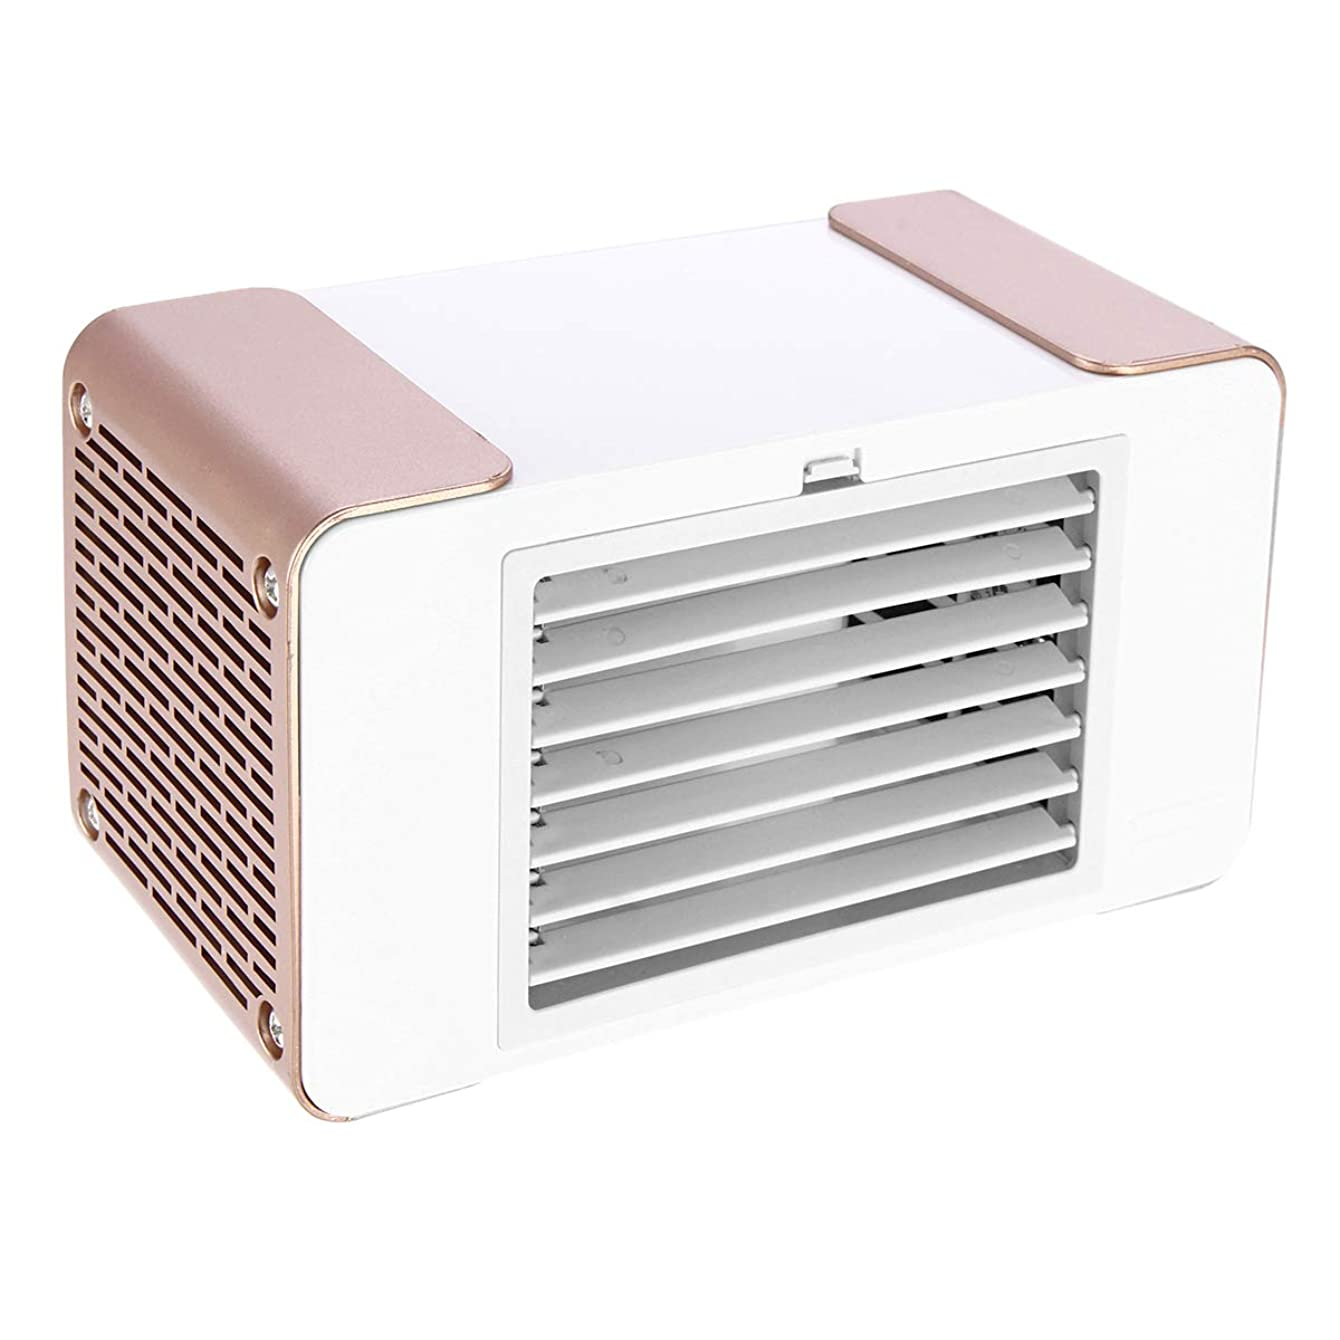 Slider 5V 5W USB Portable Mini LED Air Conditioner Equipment Air Cooler Fan Summer Cooling Machine(Iron Grey)